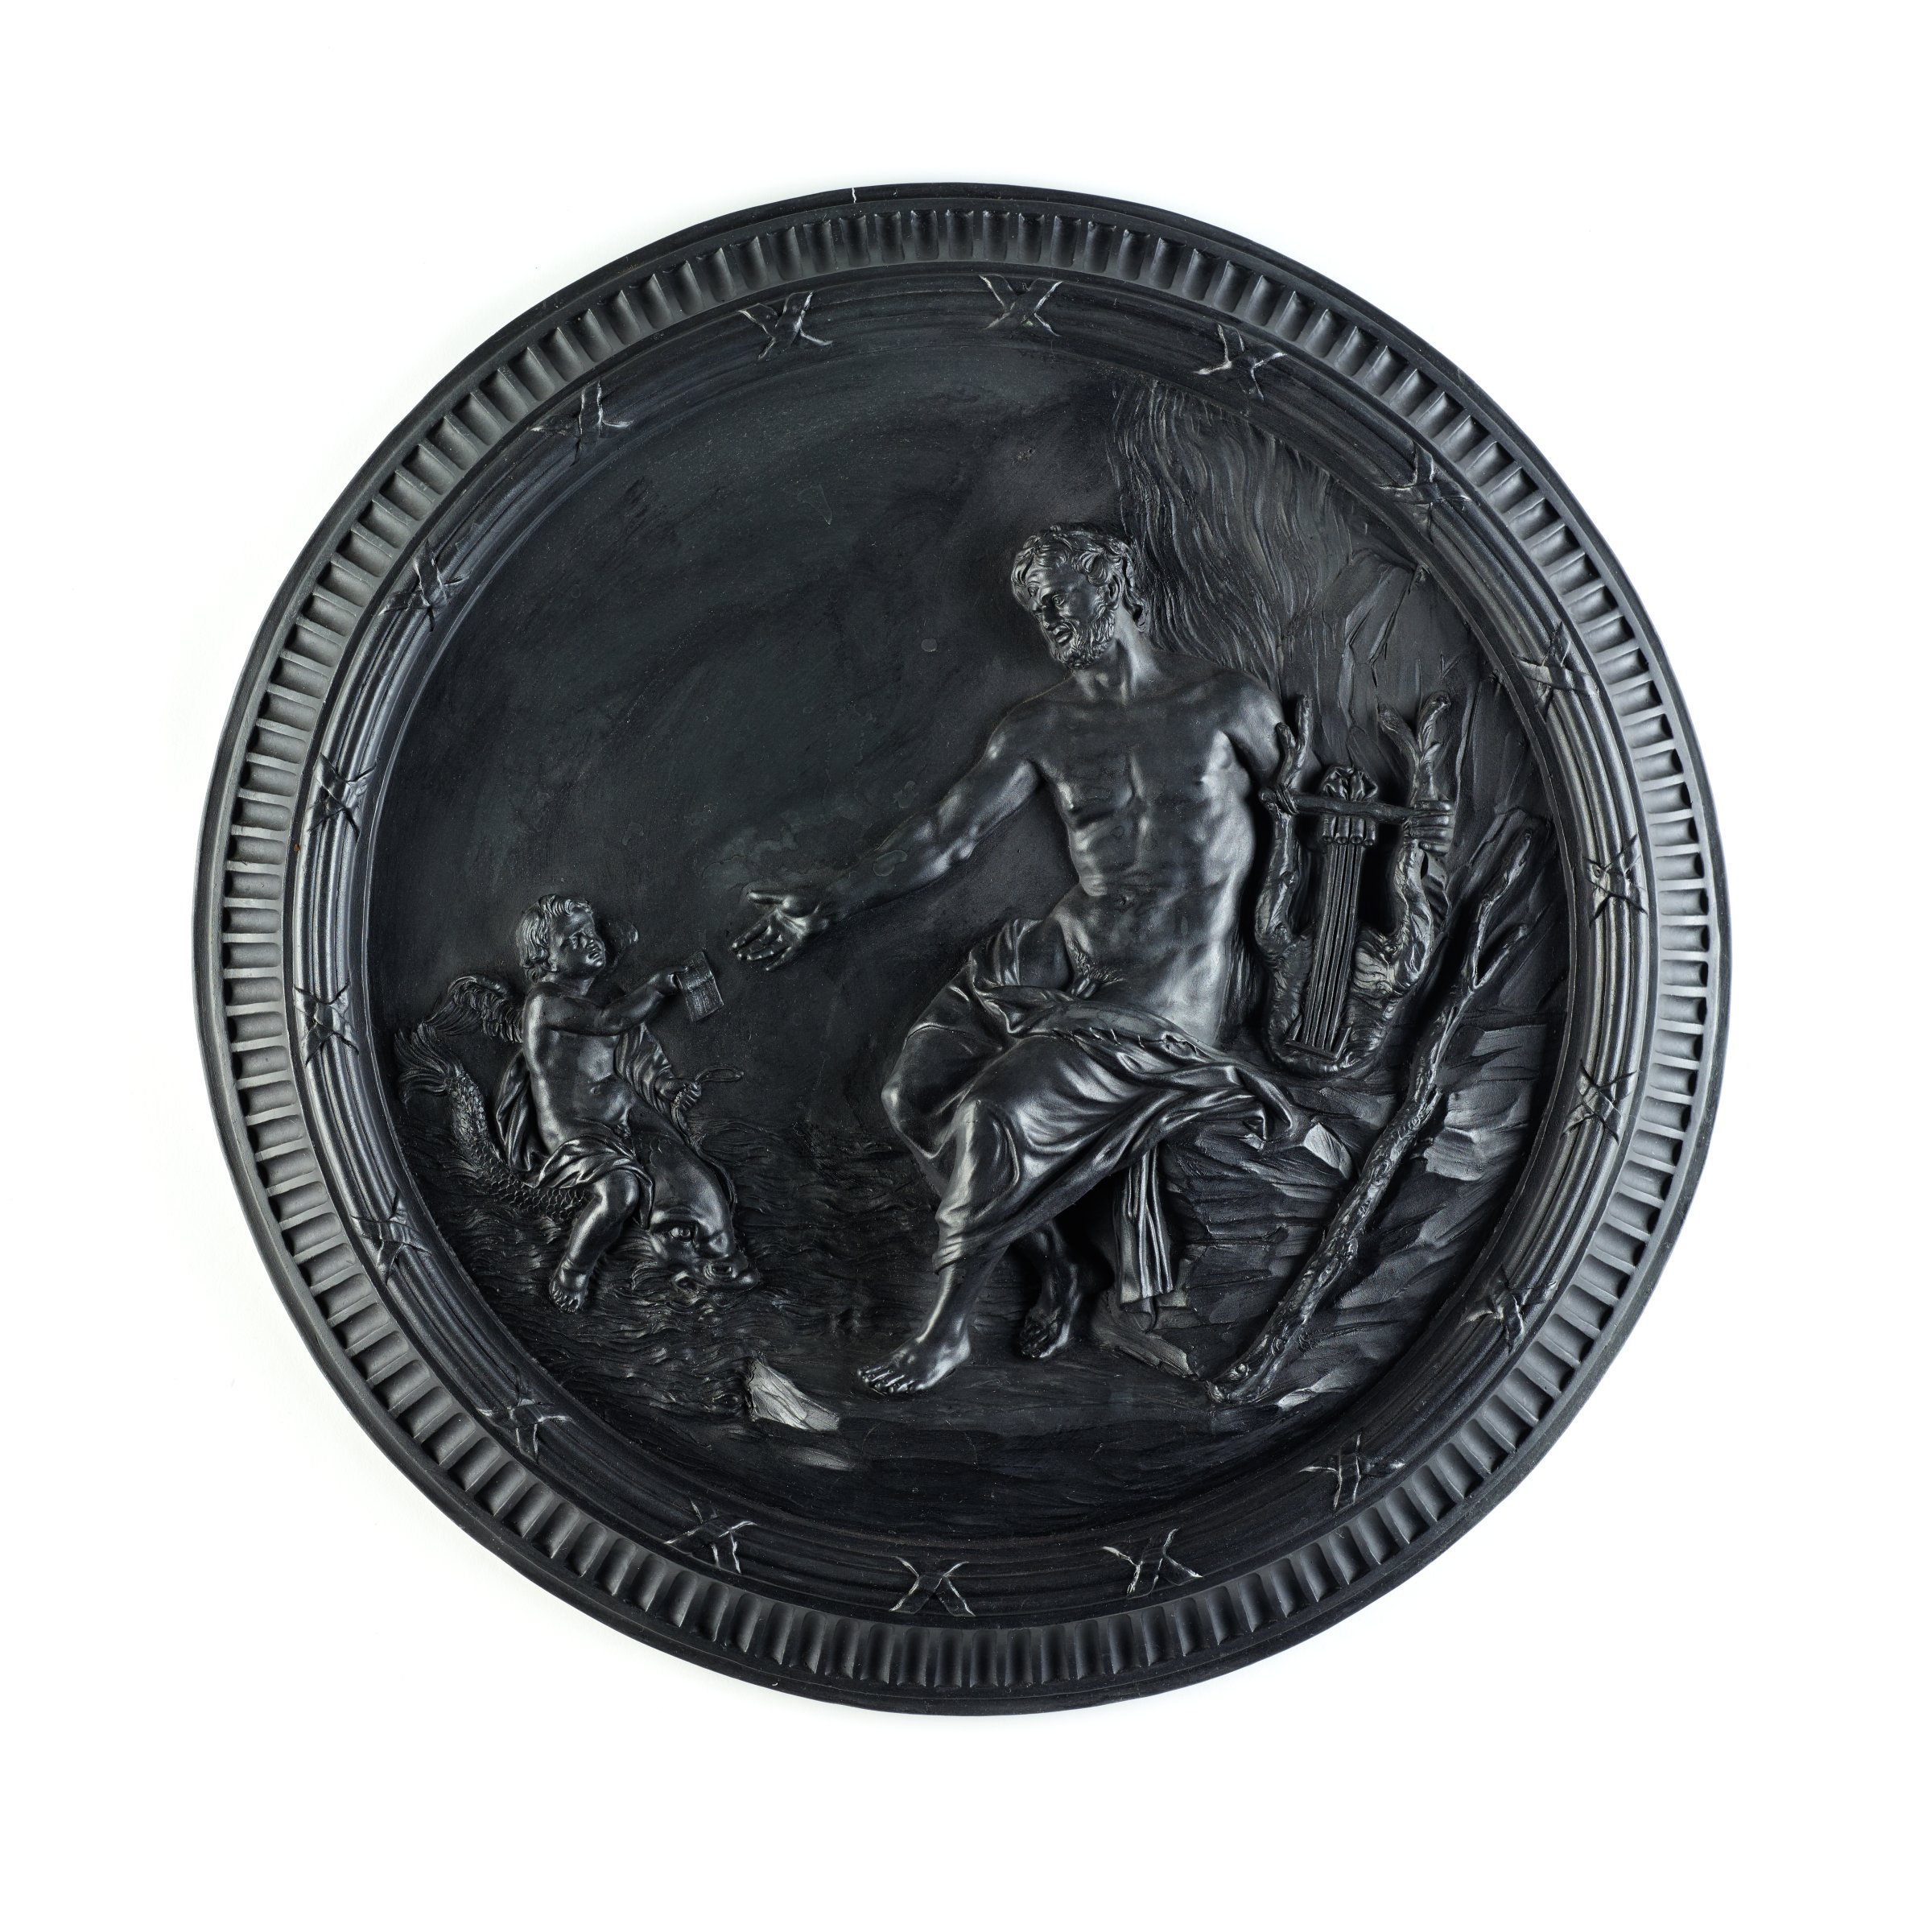 Large, polished round plaque of black basalt, self-framed, the main scene molded in high relief depicting Polyphemus seated on a rock with a lyre reaching his right hand out to Cupid who rides a dolphin and in turn extends his right hand, which holds a letter, to Polyphemus.